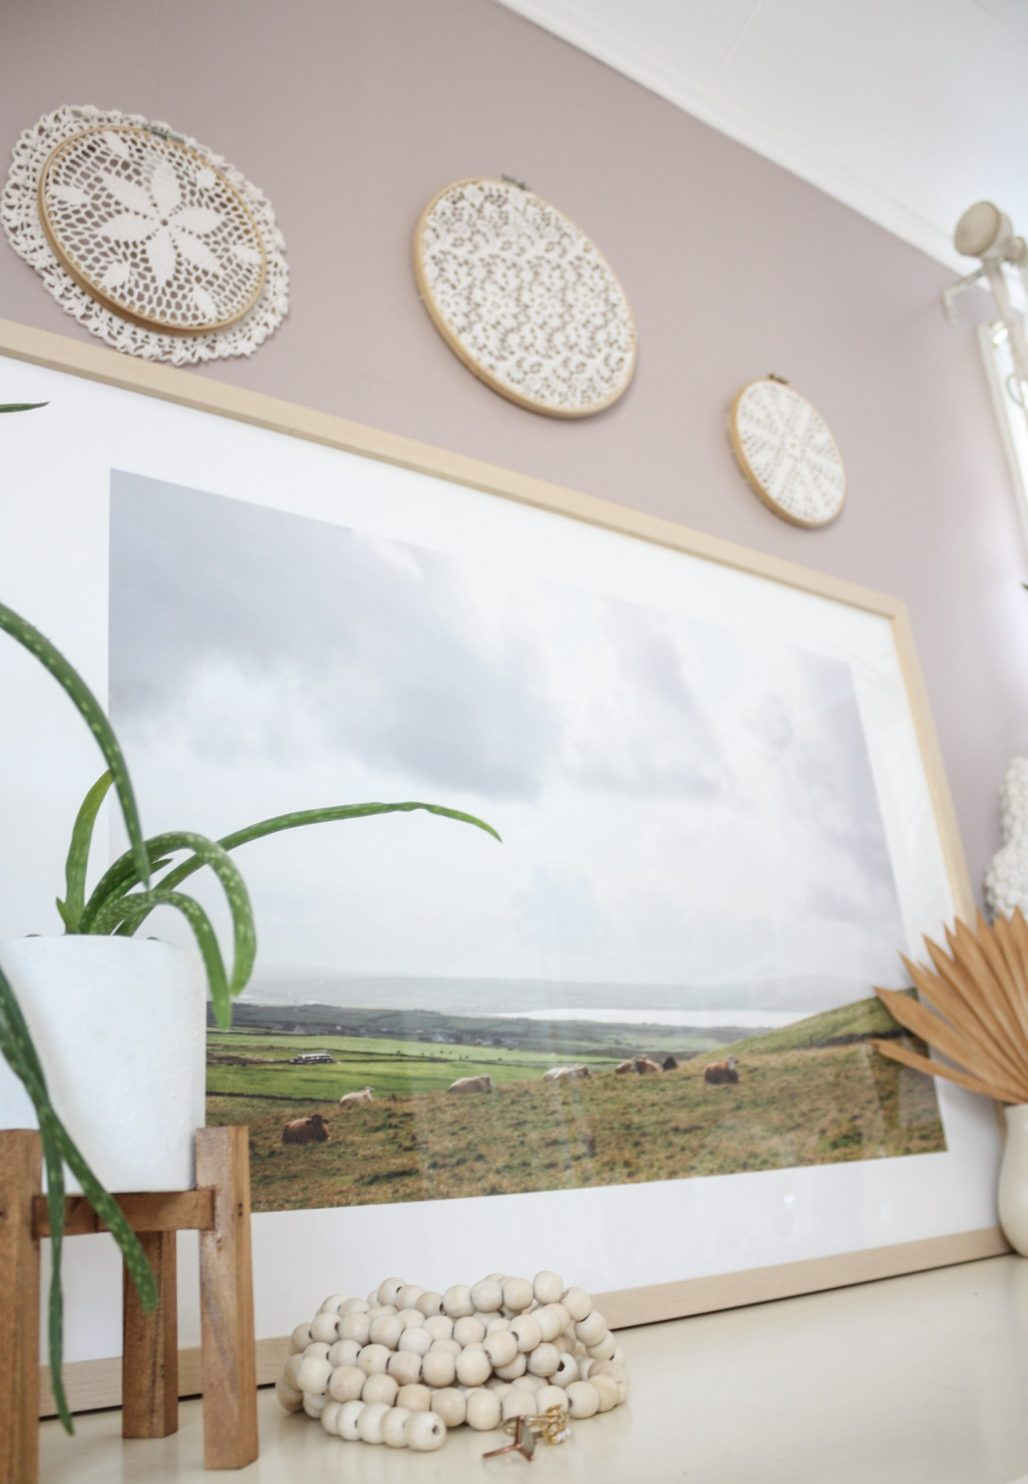 Bringing Beautiful Calm and Art into your Home with Photowall || Dreamery Events